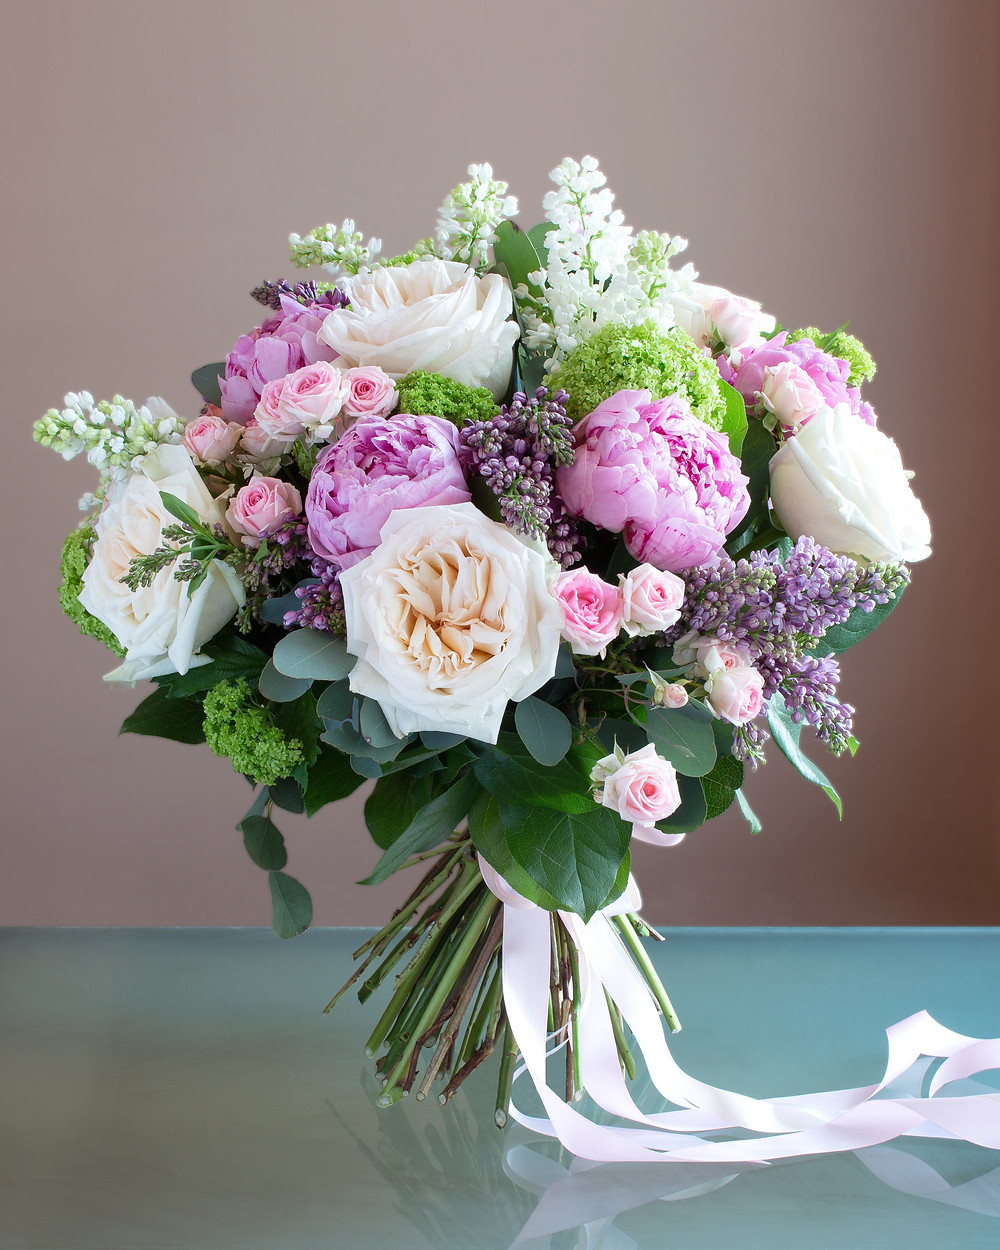 A secnted posy of fragrant flowers